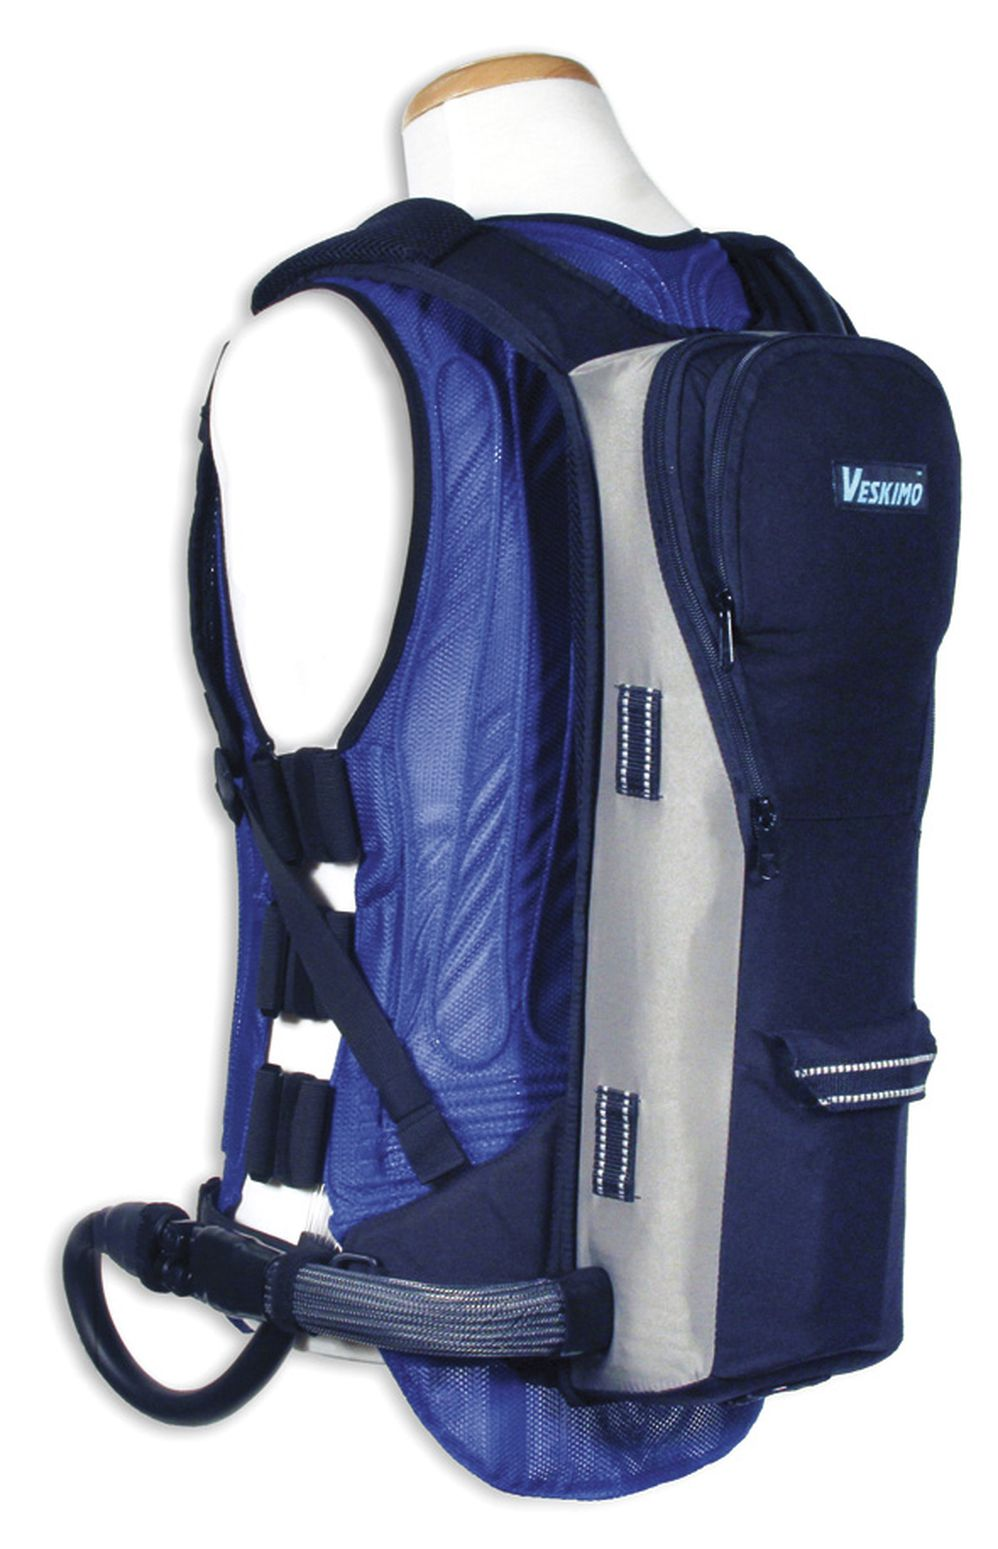 Veskimo Personal Cooling System- Product Review- CW